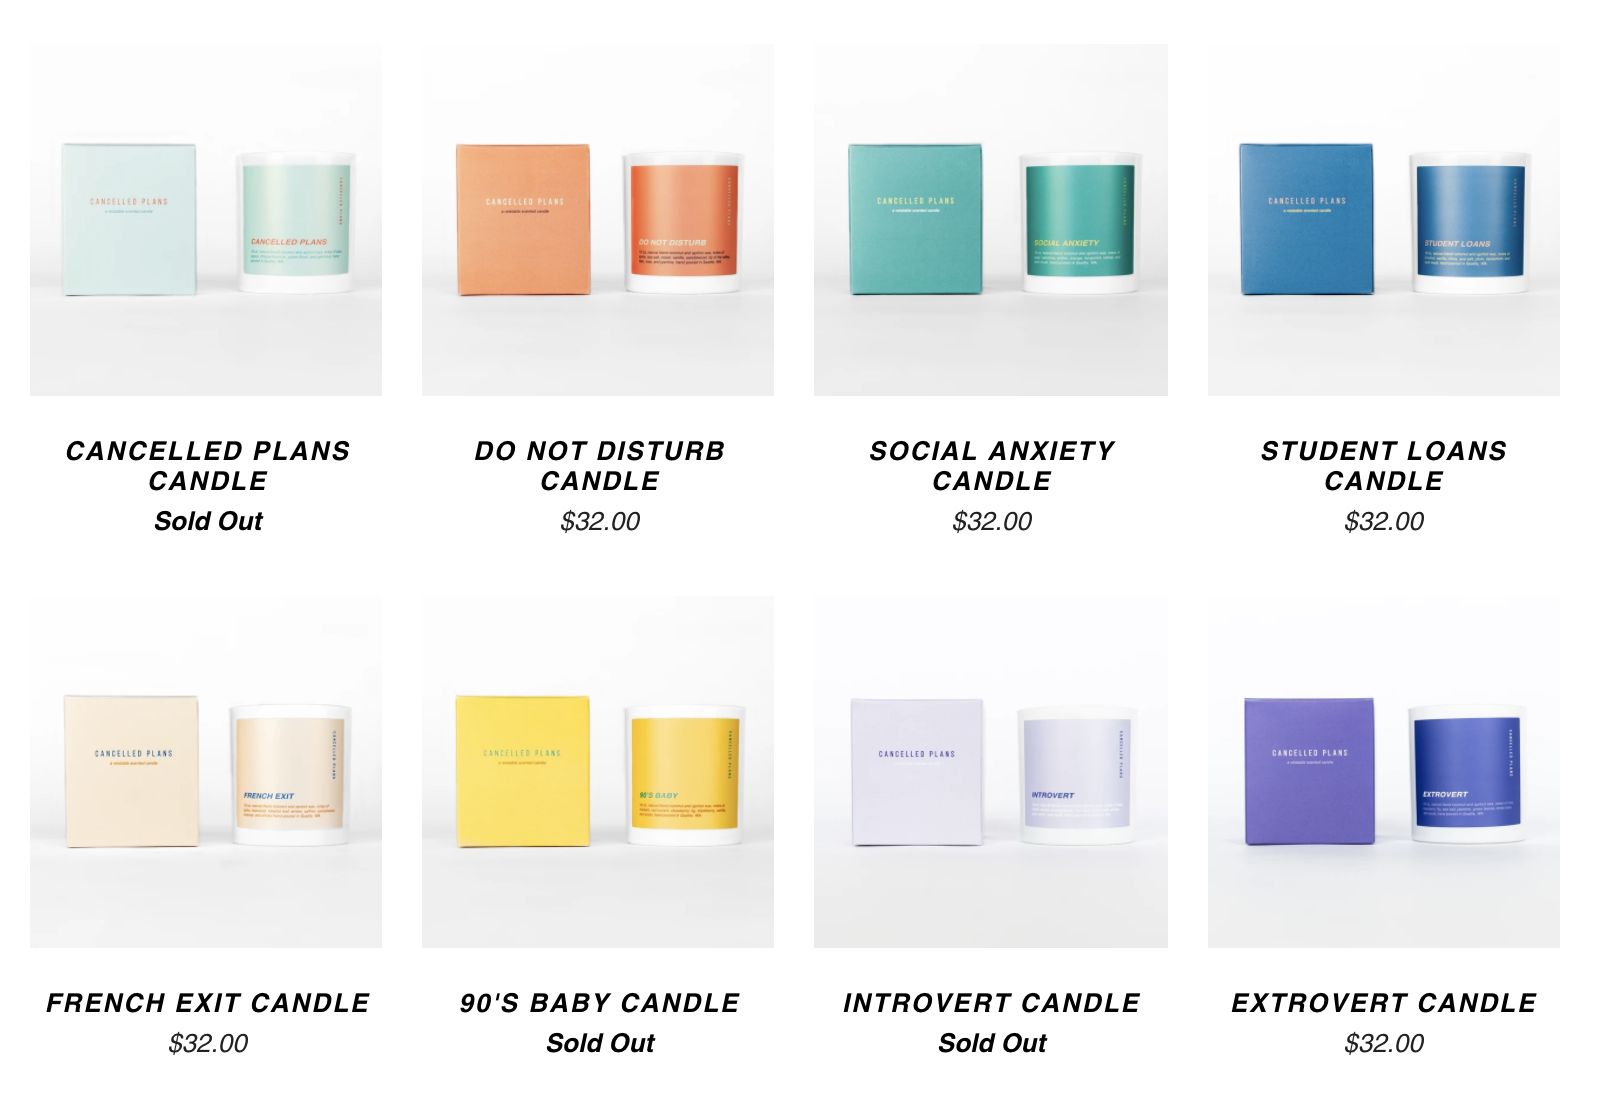 Cancelled Plans complete line of candles.